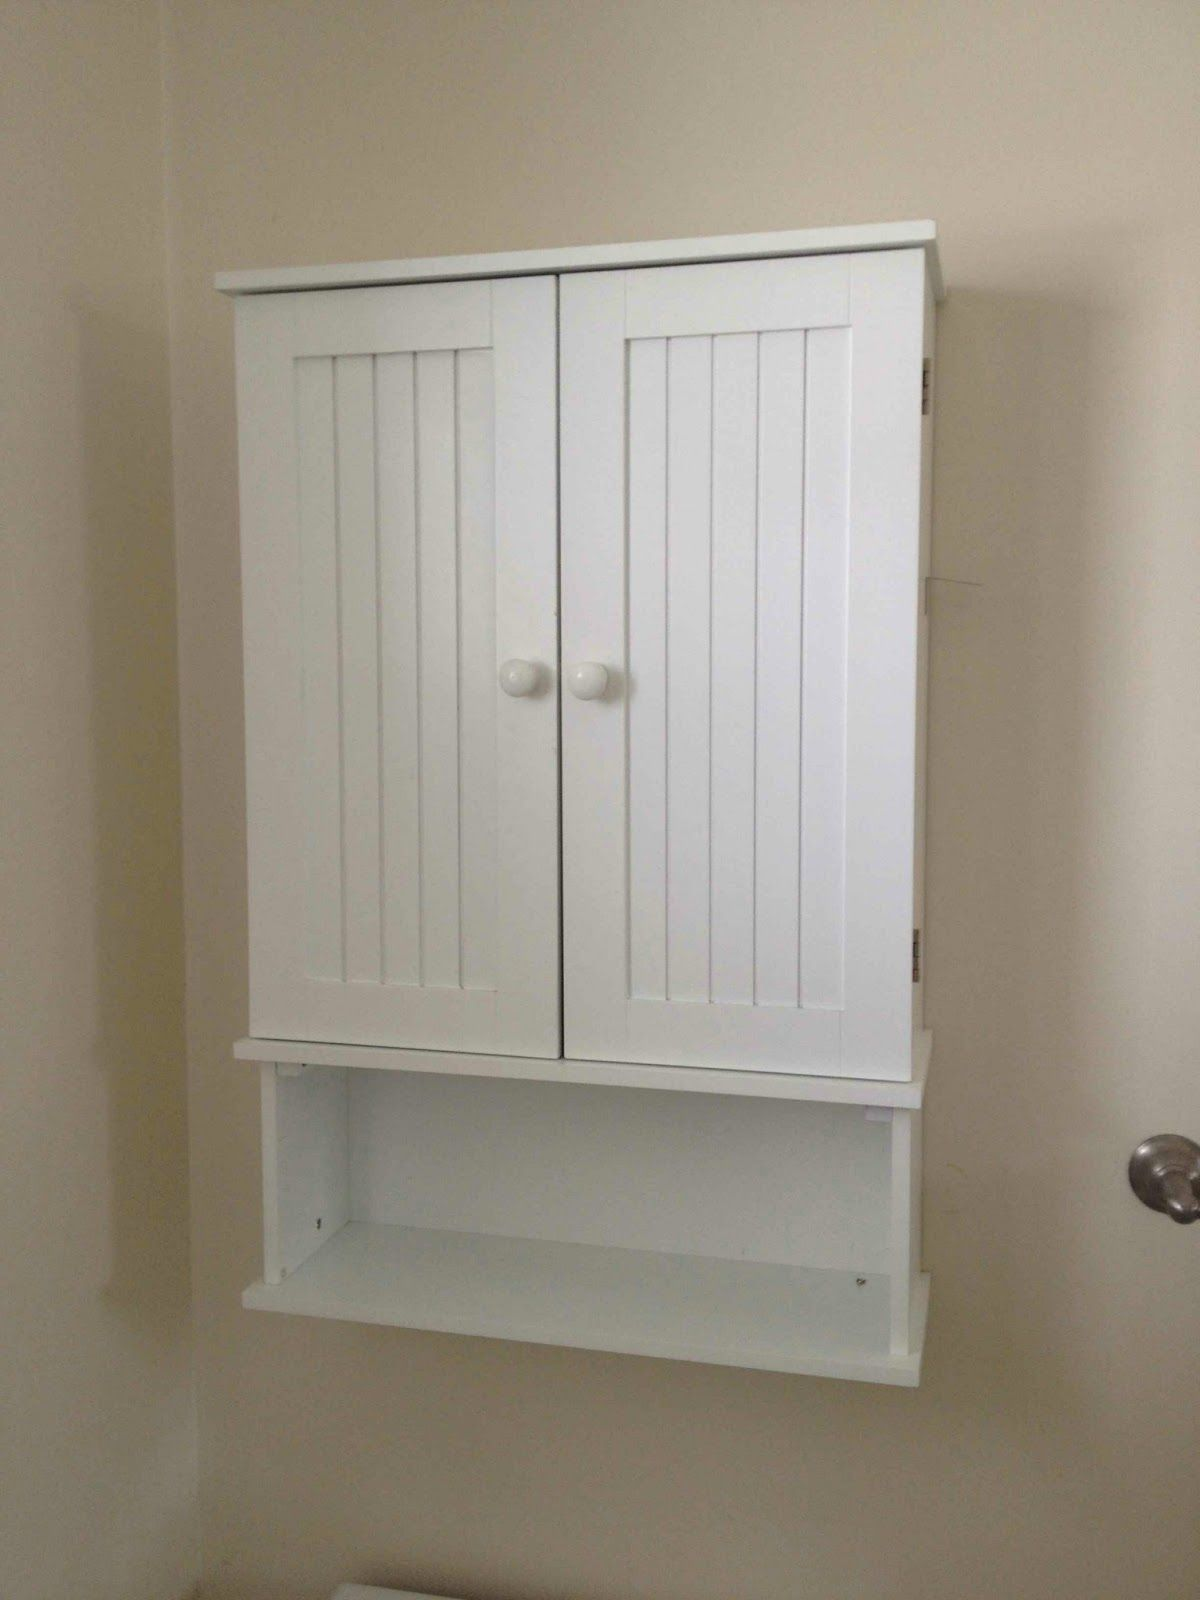 Amazing White Wooden Double Door And Single Shelves Wall Mount Cabinet Over Toilet Storage Attach At Bathroom Painted In Small E Guest Bath